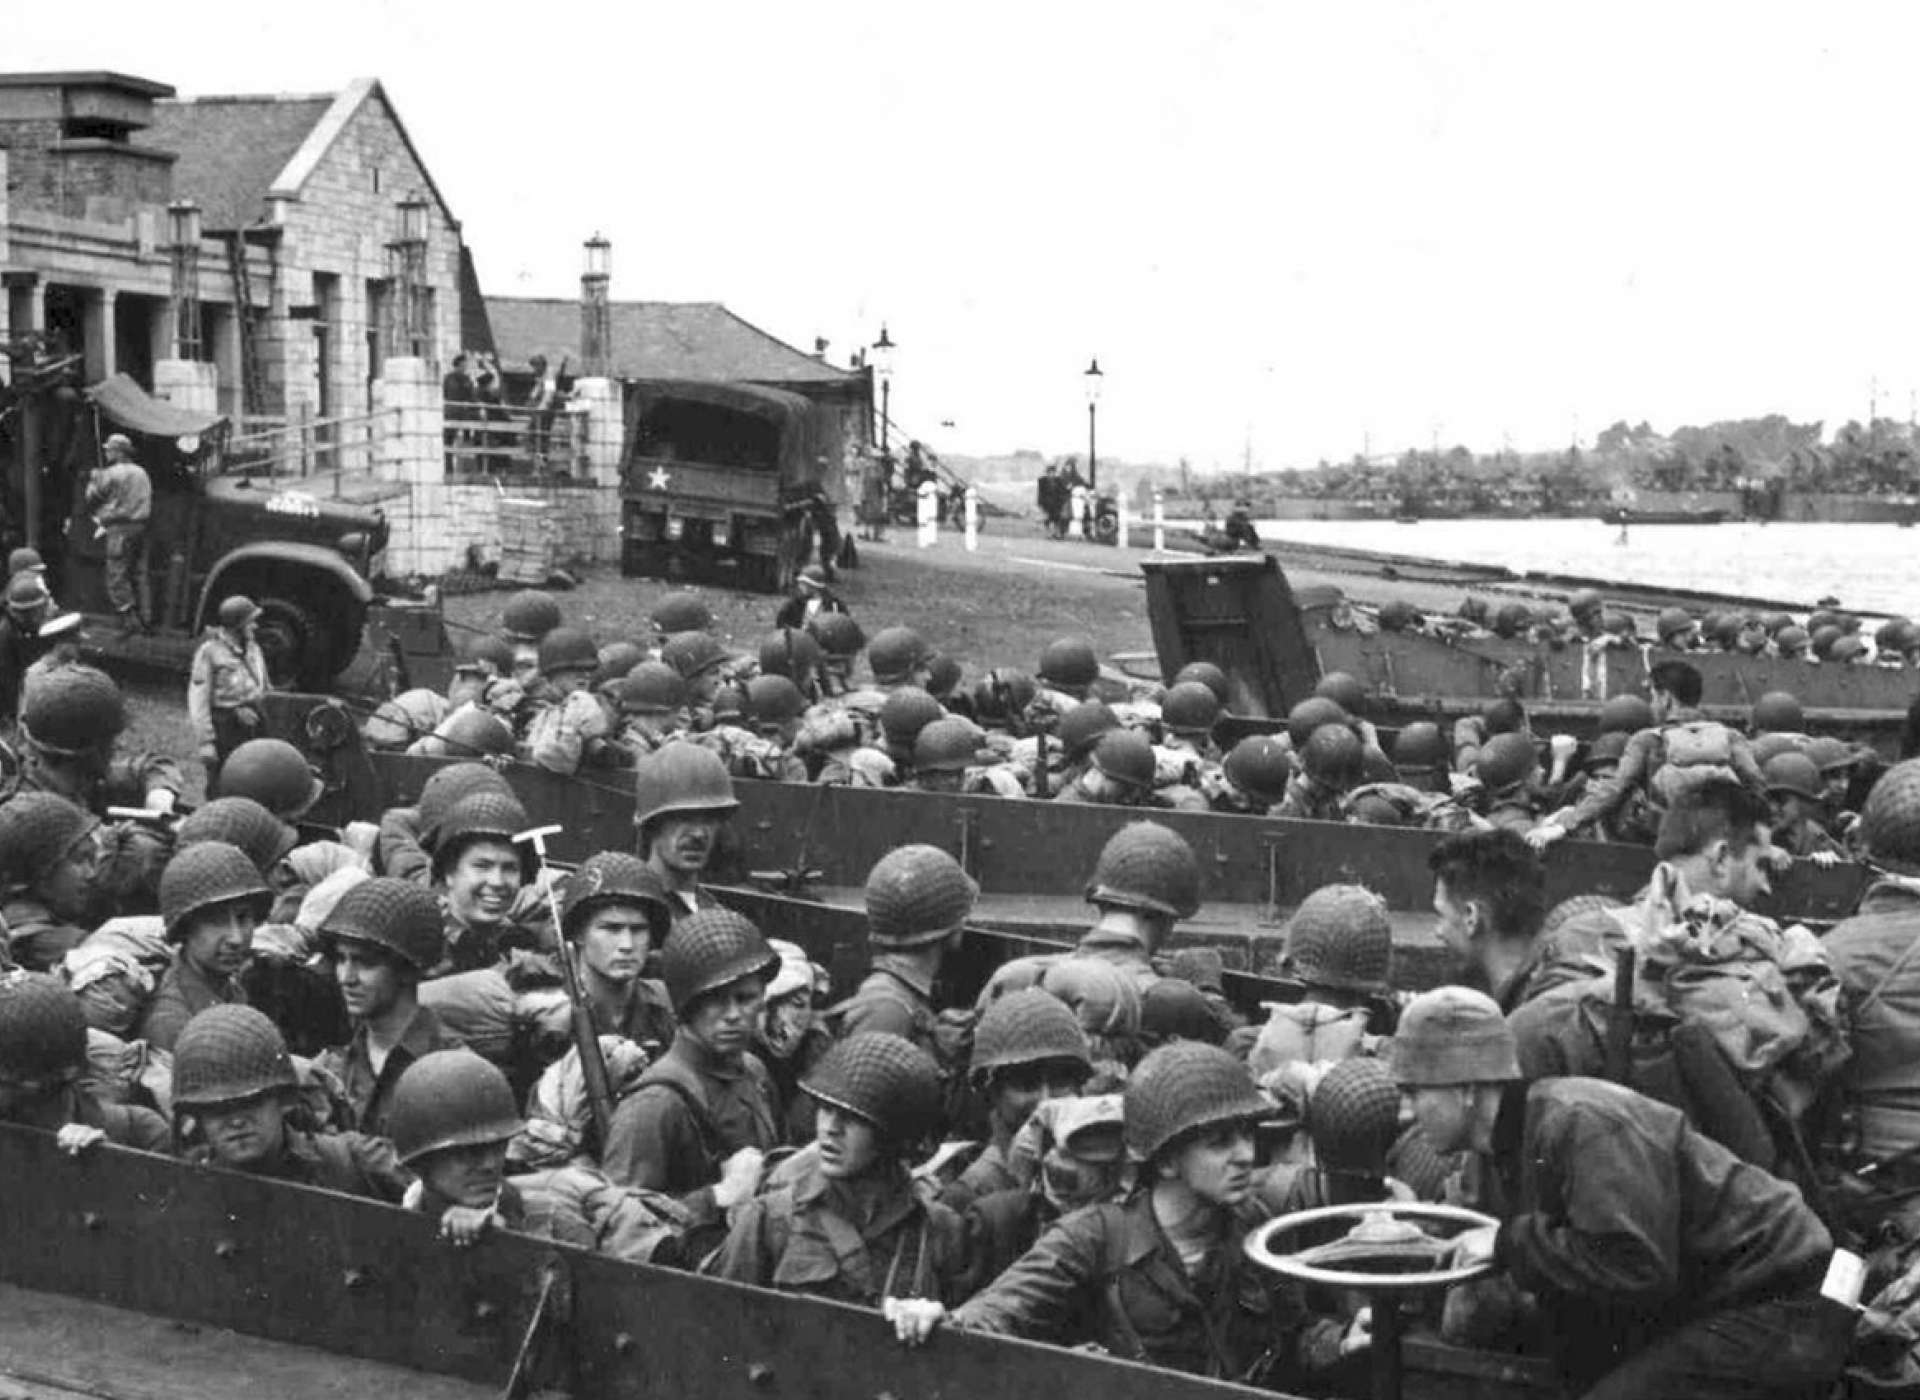 D-Day Invasion of Normandy gallery, photo of soldiers in boats on shores of Normandy